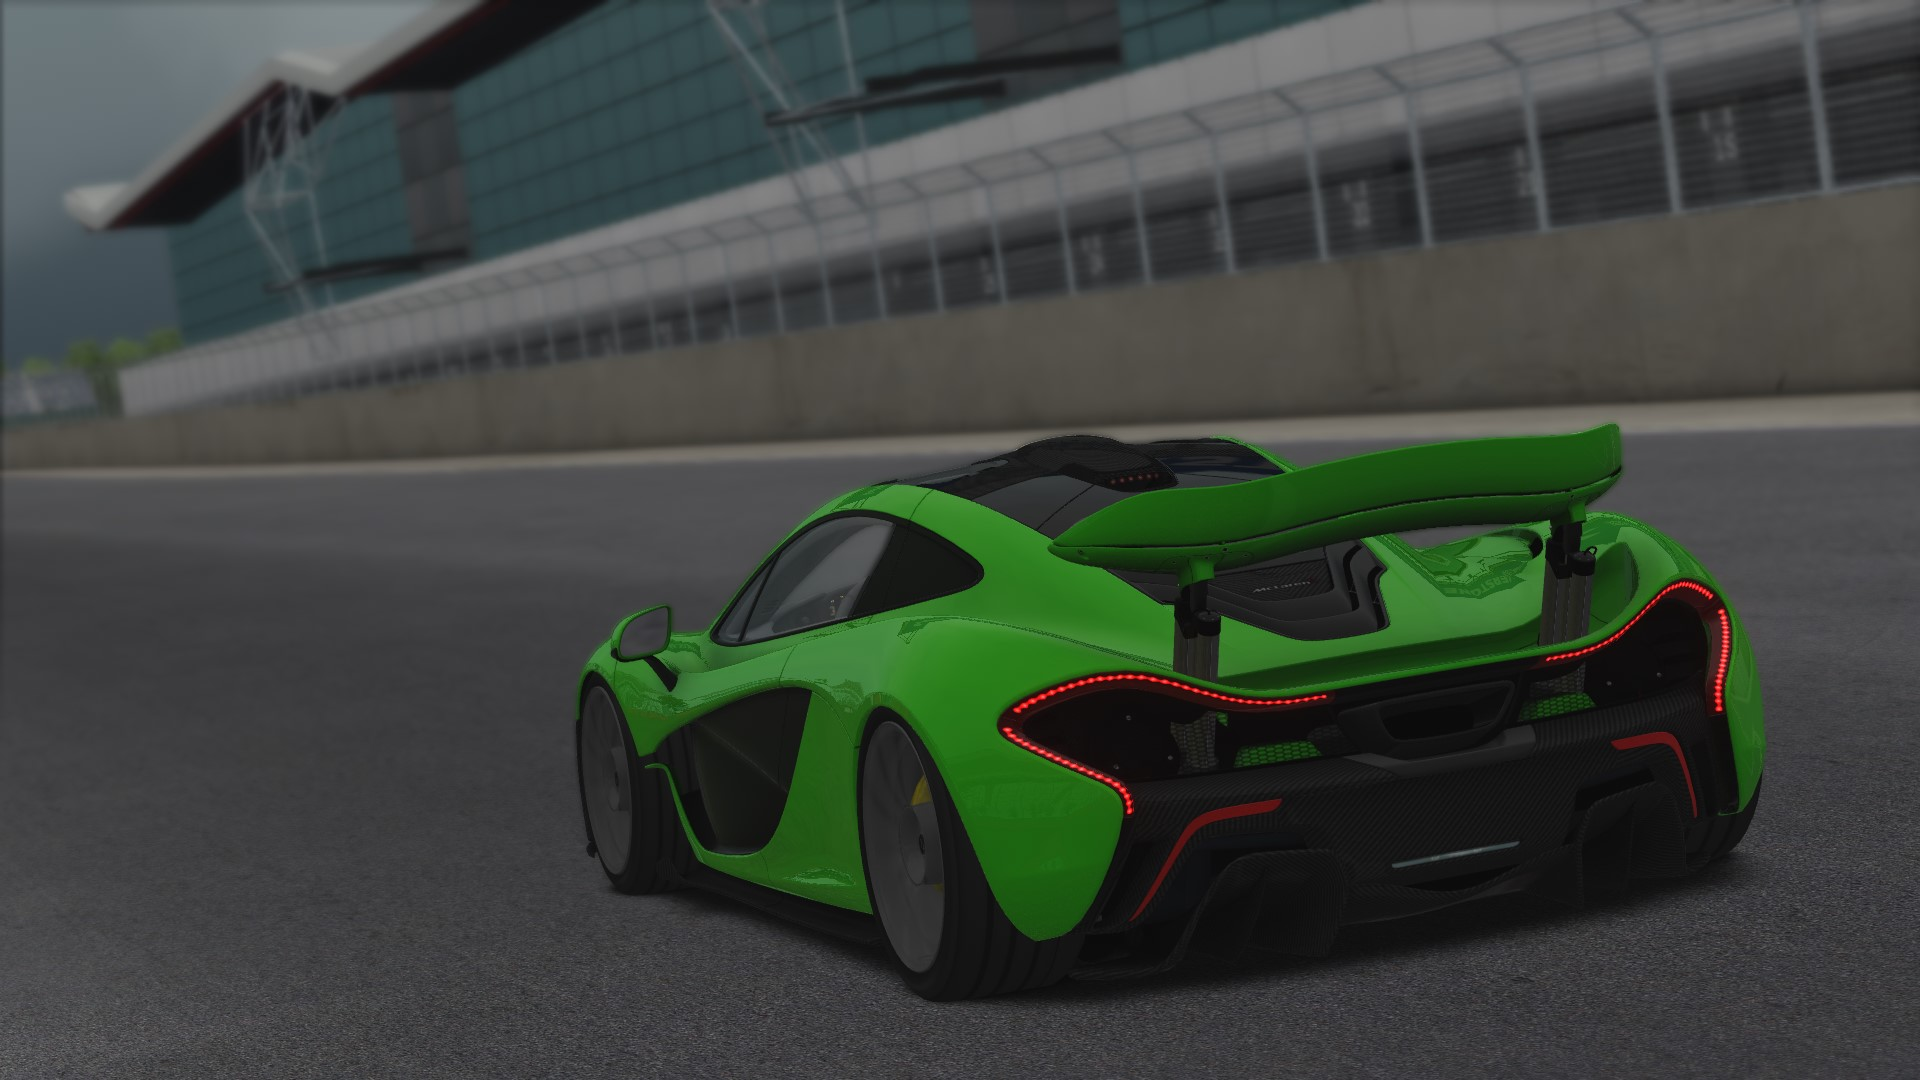 Screenshot_ks_mclaren_p1_silverstone-international_11-8-115-20-18-31.jpg